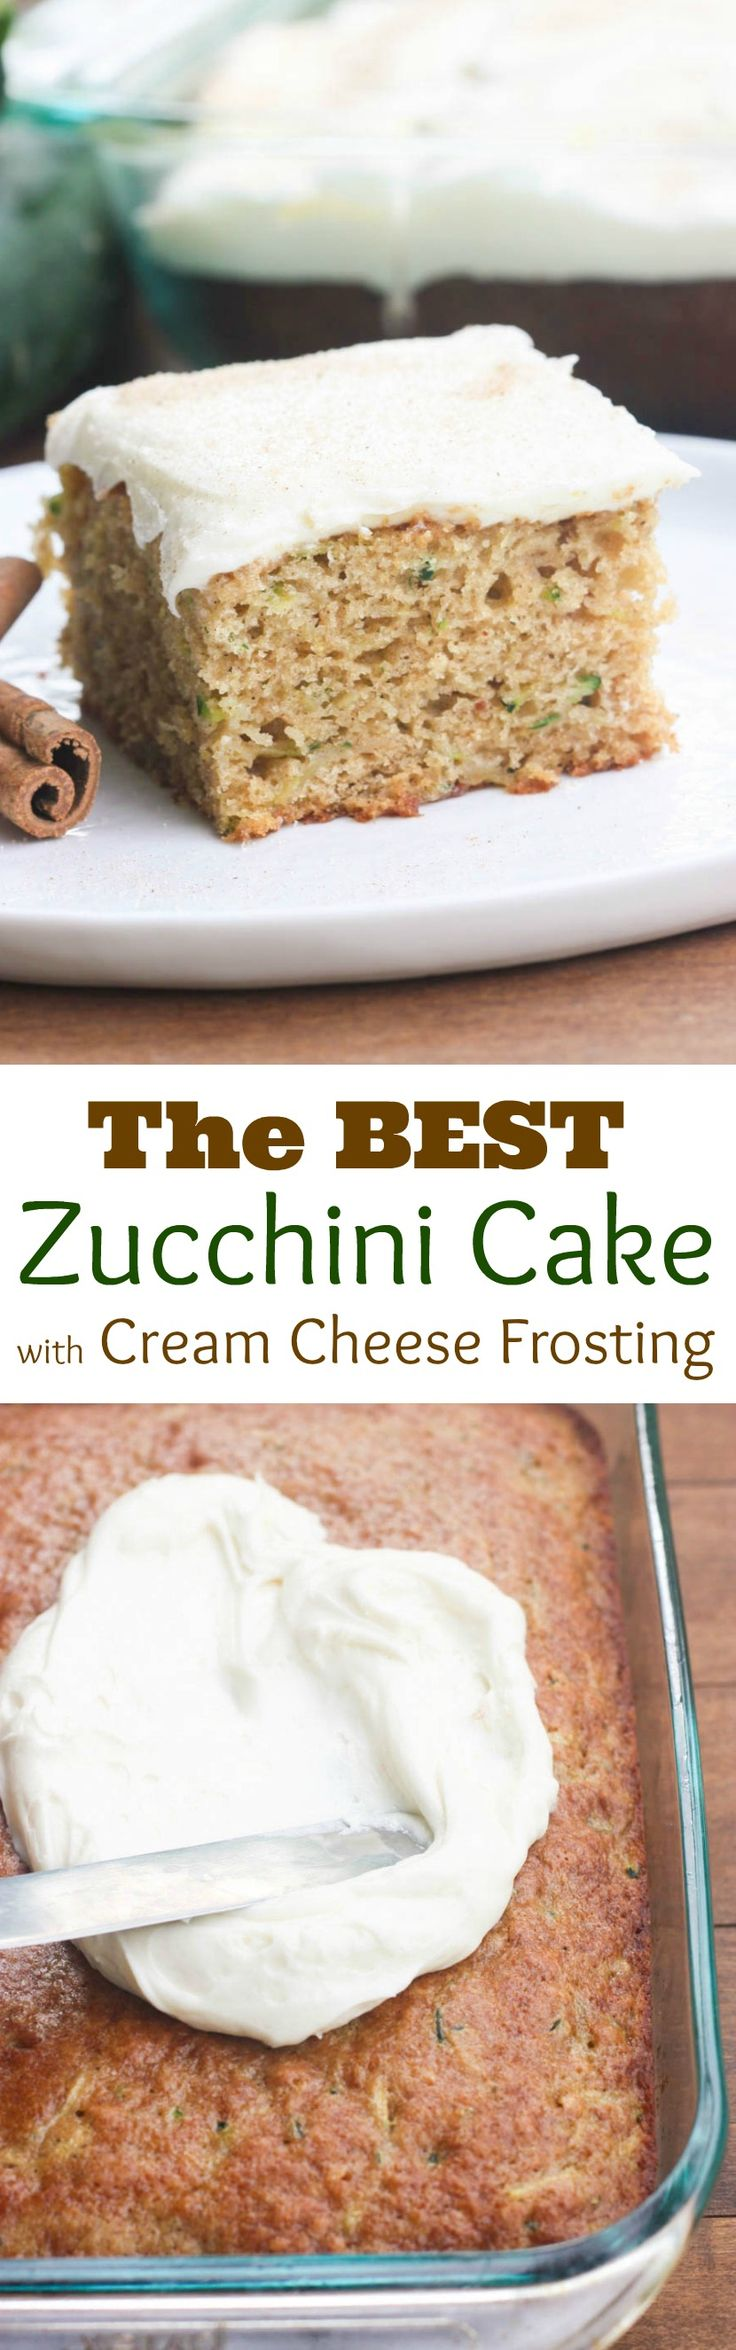 The BEST Zucchini Cake with Cream Cheese Frosting on MyRecipeMagic.com